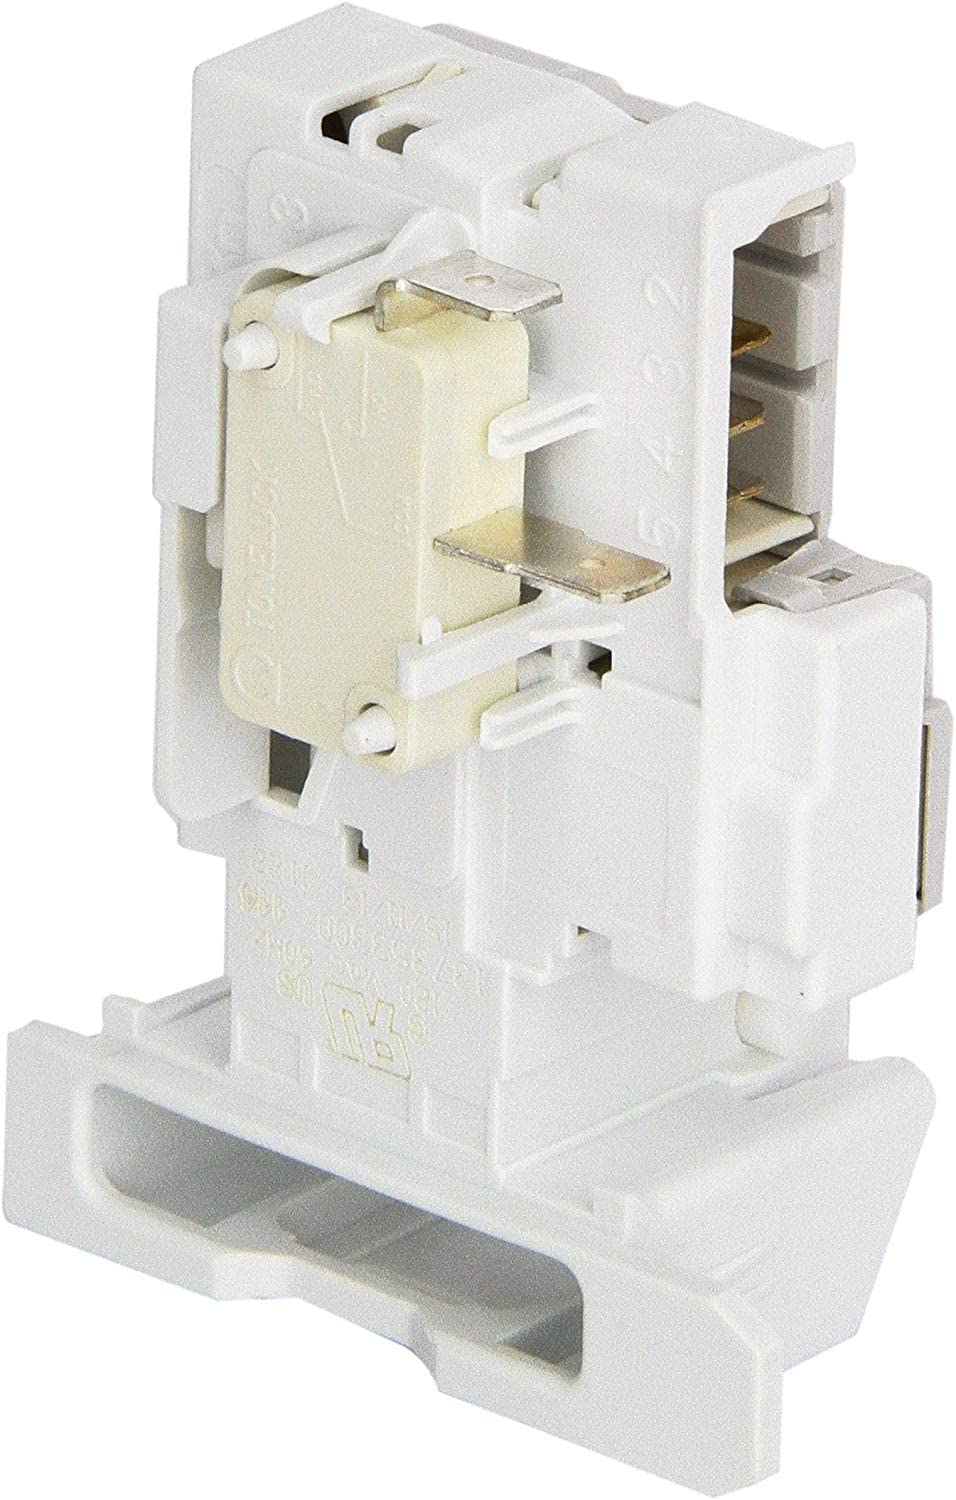 NEW 137353300 Compatible Door Latch with Switch for FRIGIDAIRE Washer, AP5650514 PS5574024 made by OEM Manufacturer - 2 YEAR WARRANTY